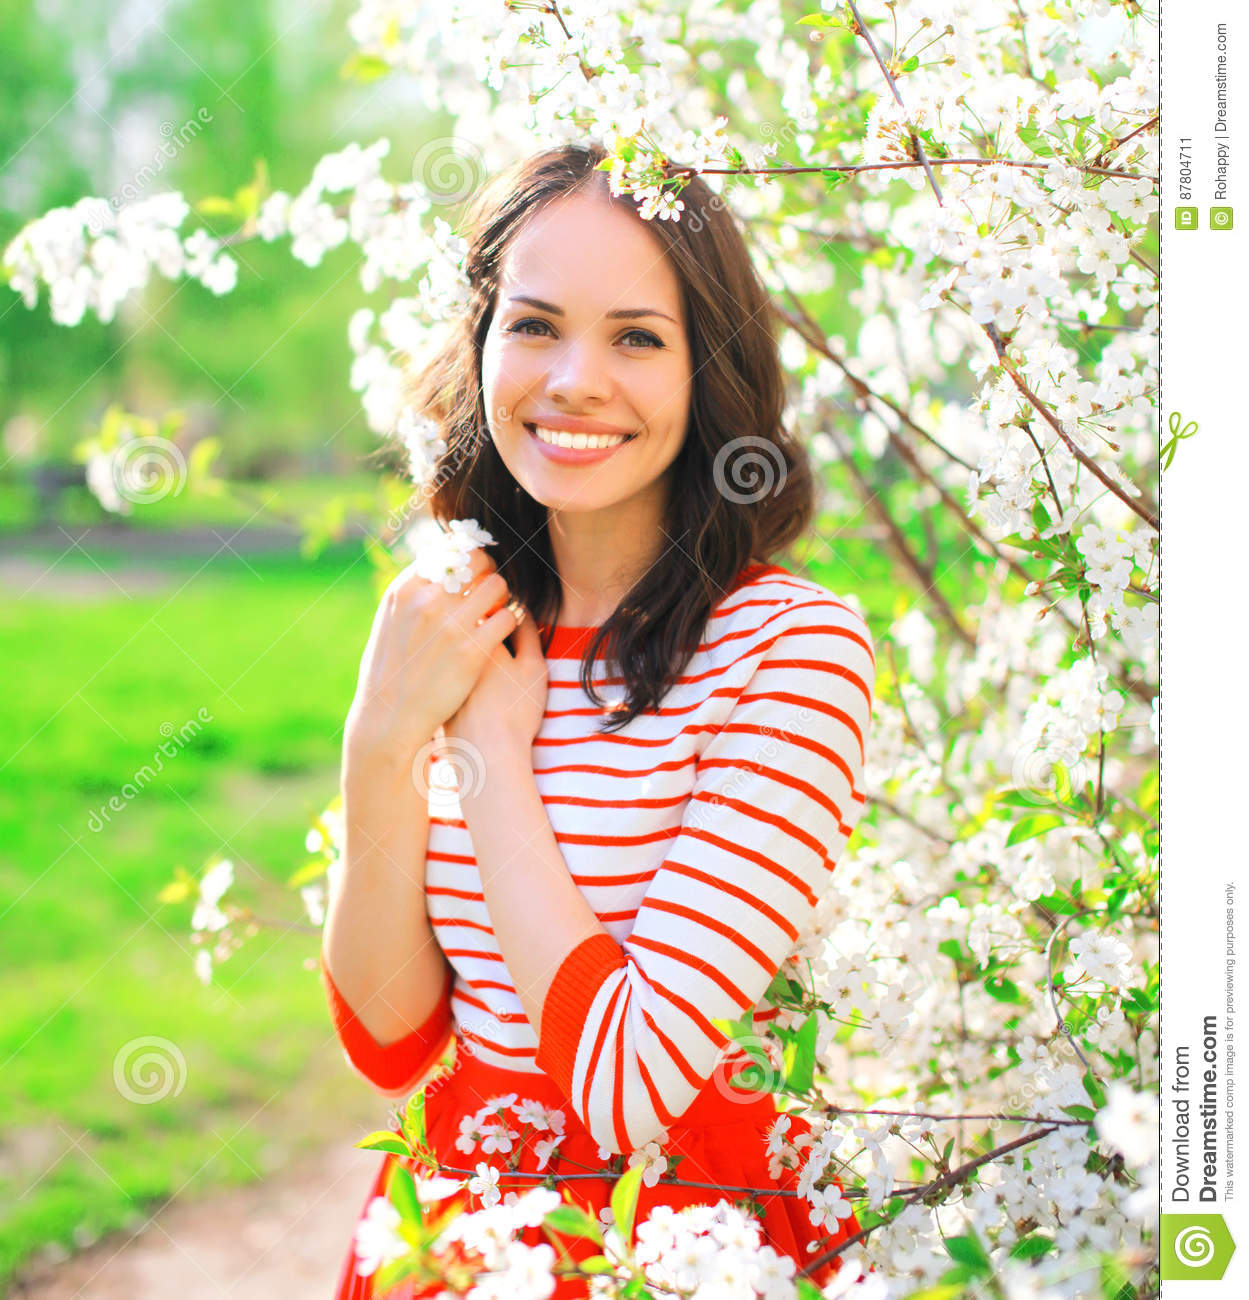 Portrait happy smiling young woman over spring flowers